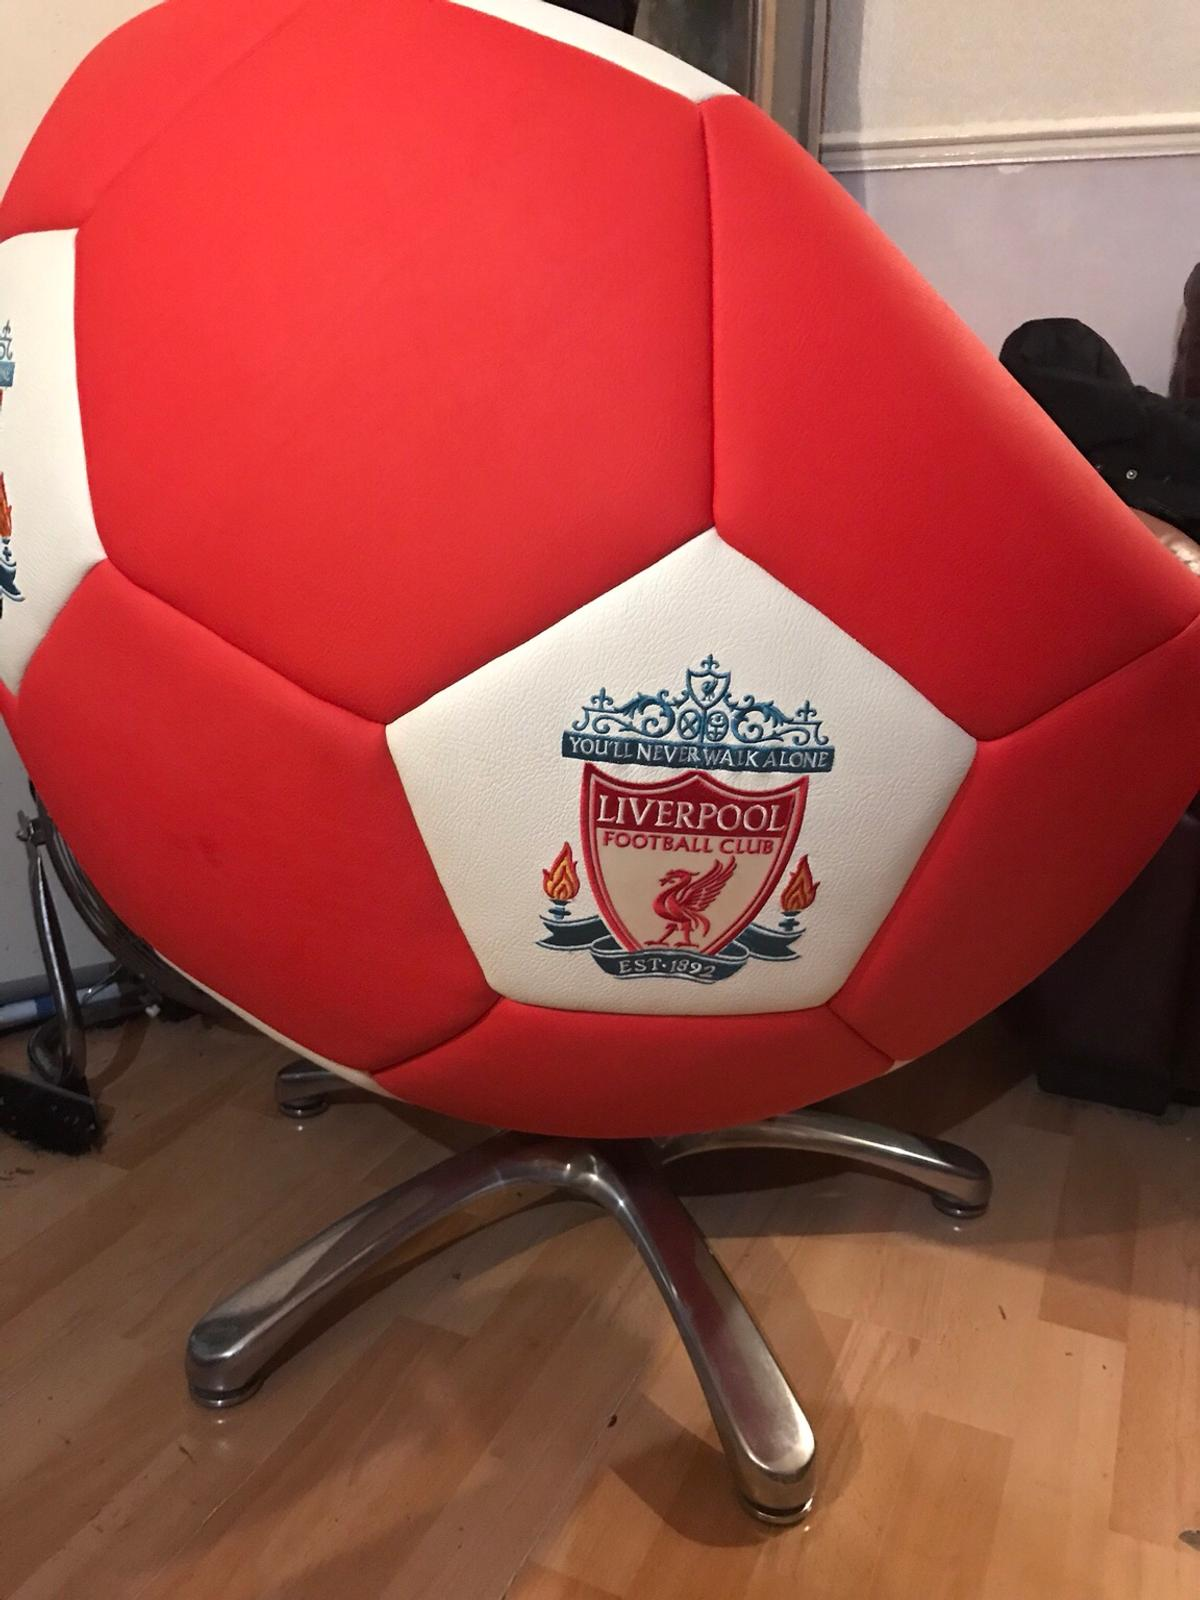 Phenomenal Chair In Sw11 Wandsworth For 300 00 For Sale Shpock Pdpeps Interior Chair Design Pdpepsorg